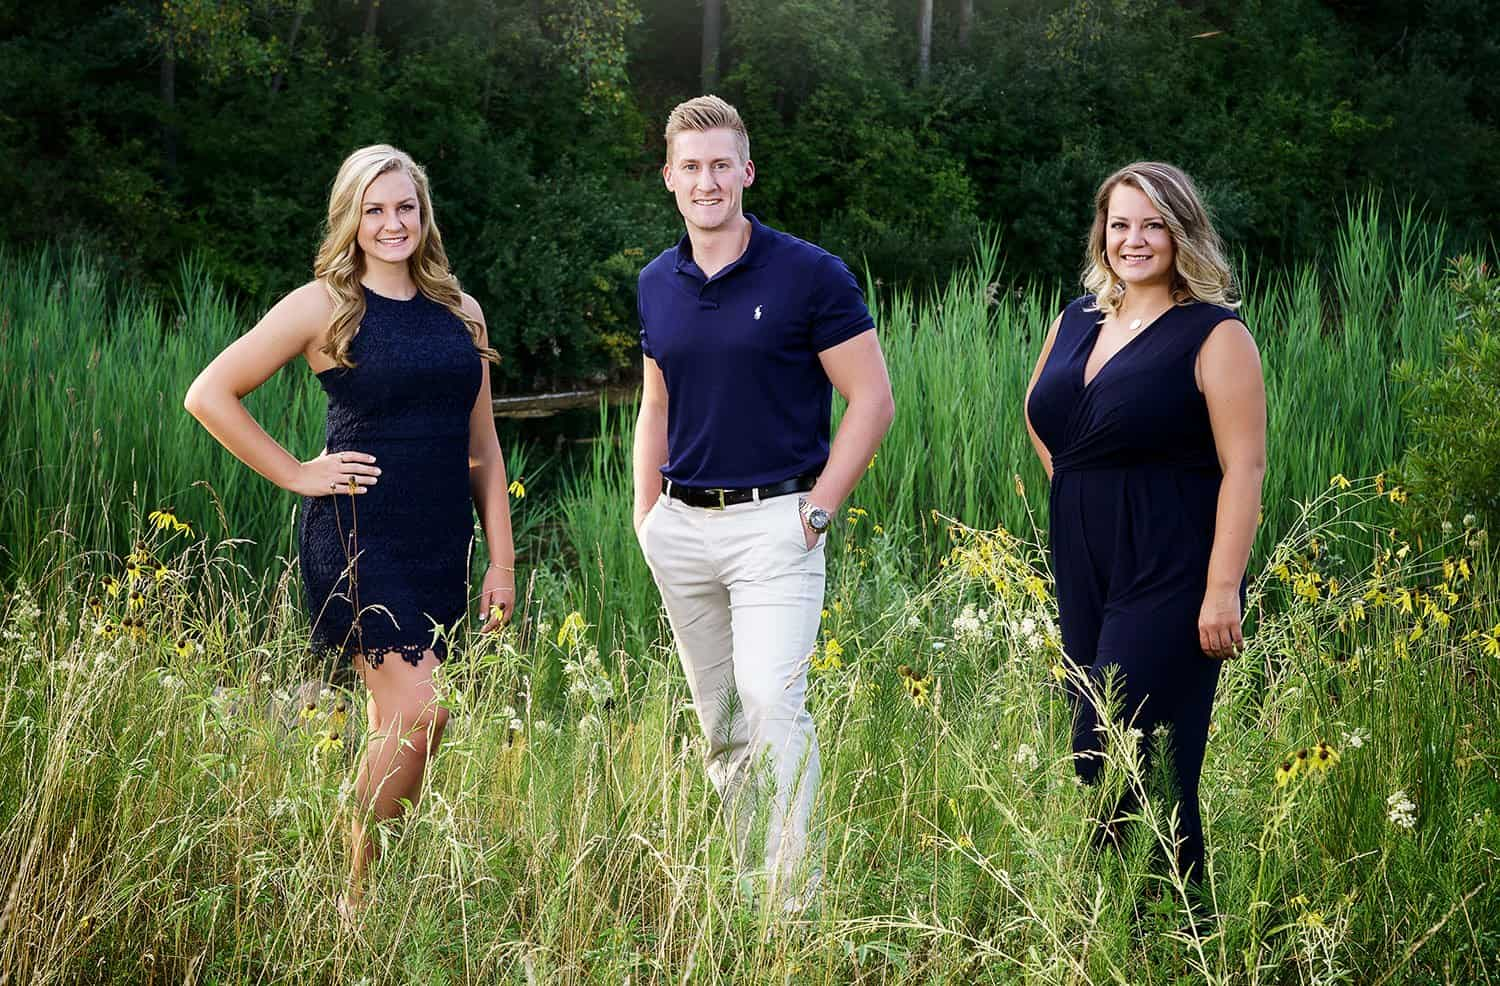 nfocus photos crystal Lake senior photographer Miss Cary Grove IL senior photo shoot